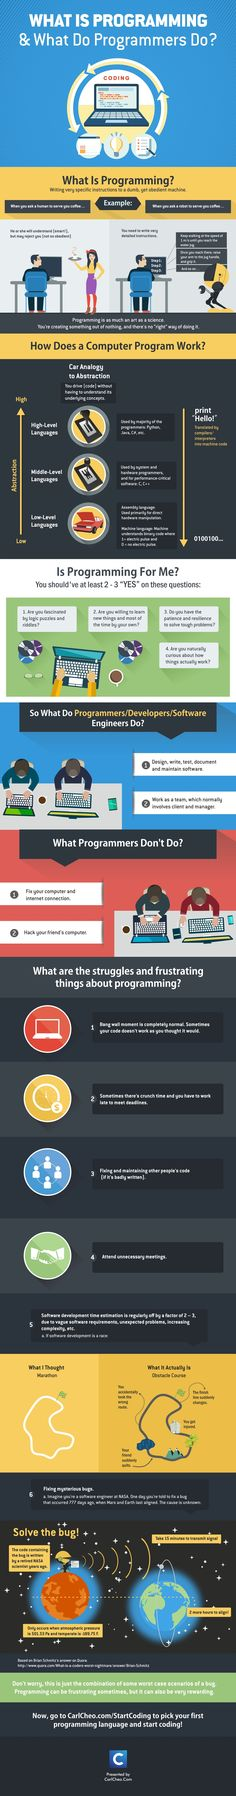 What is Programming and What Do Programmers Do?